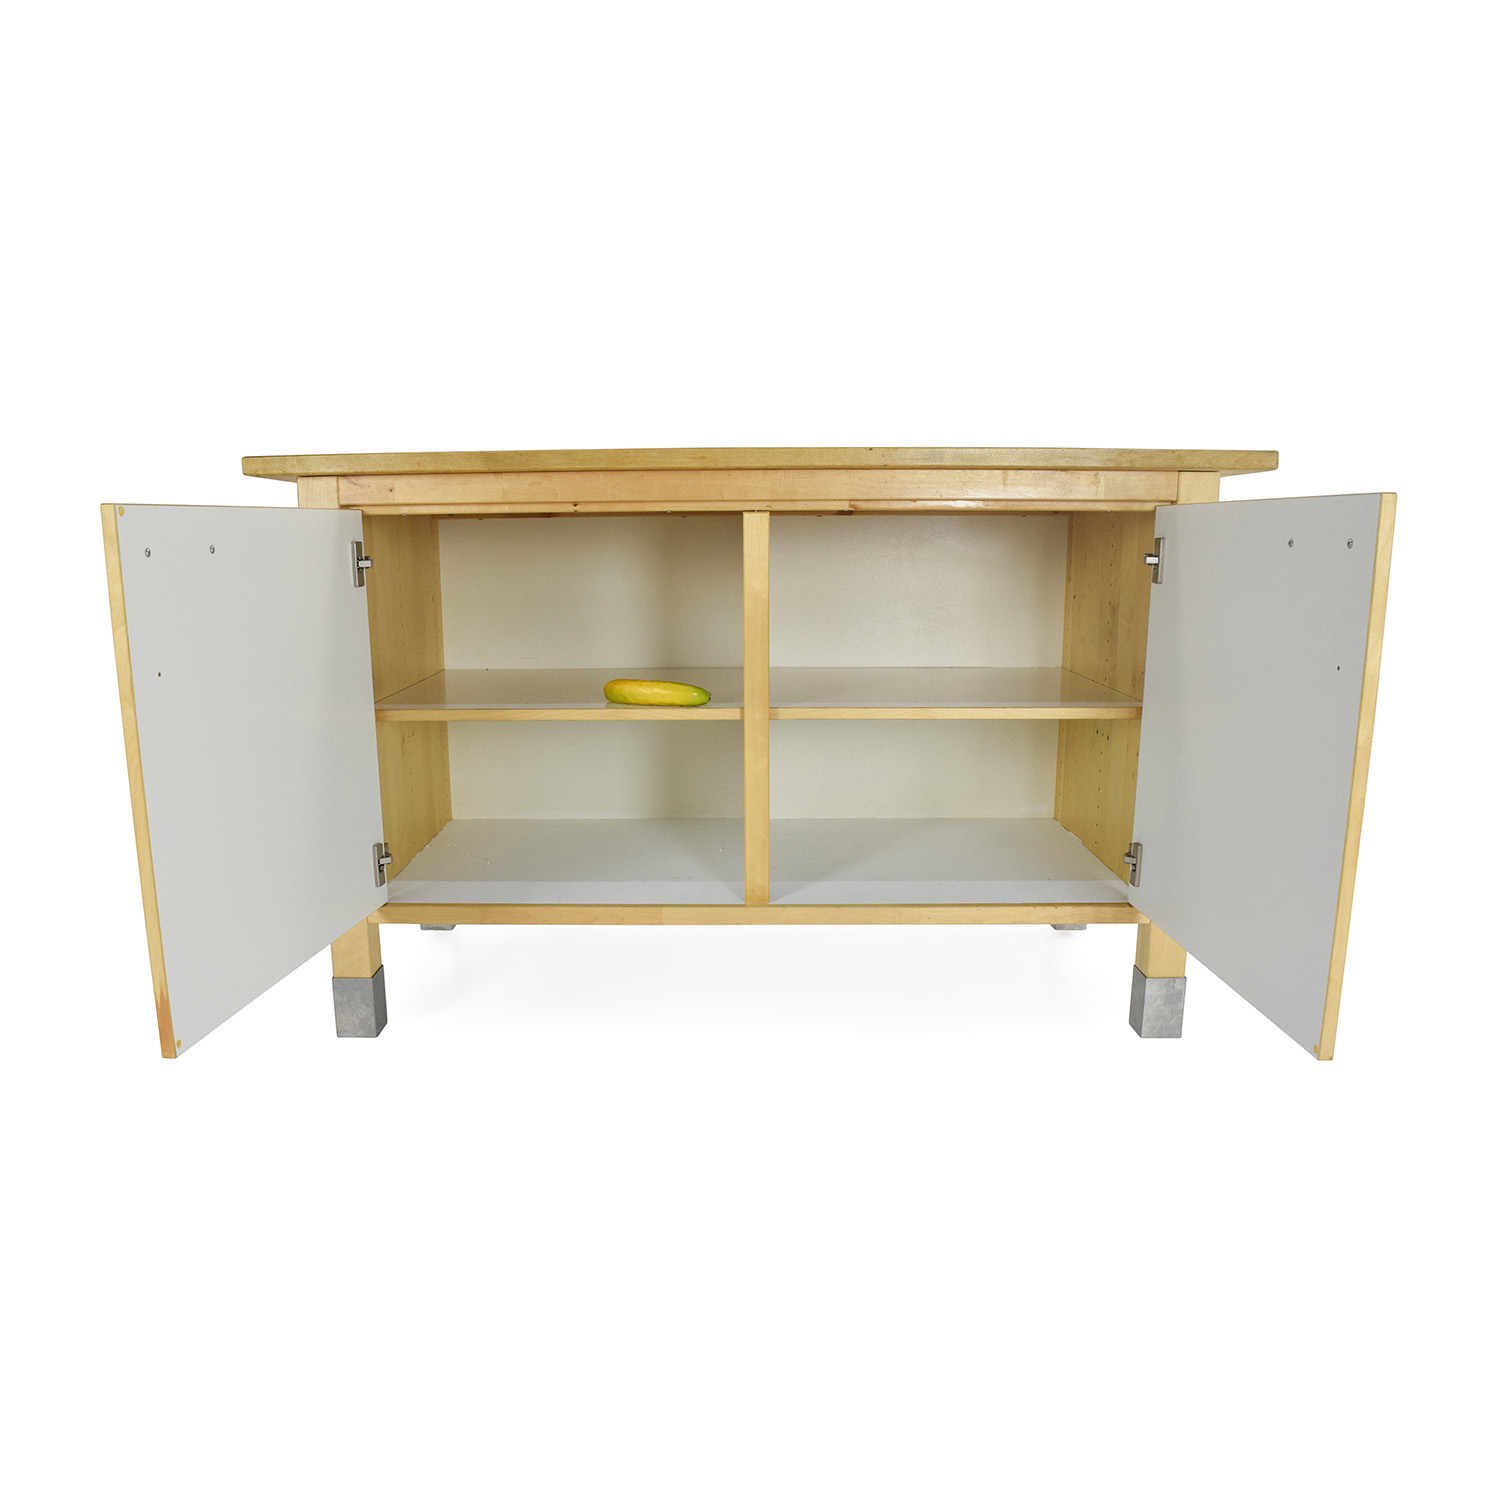 82 off ikea kitchen block cabinet table storage for Ikea storage cabinets kitchen